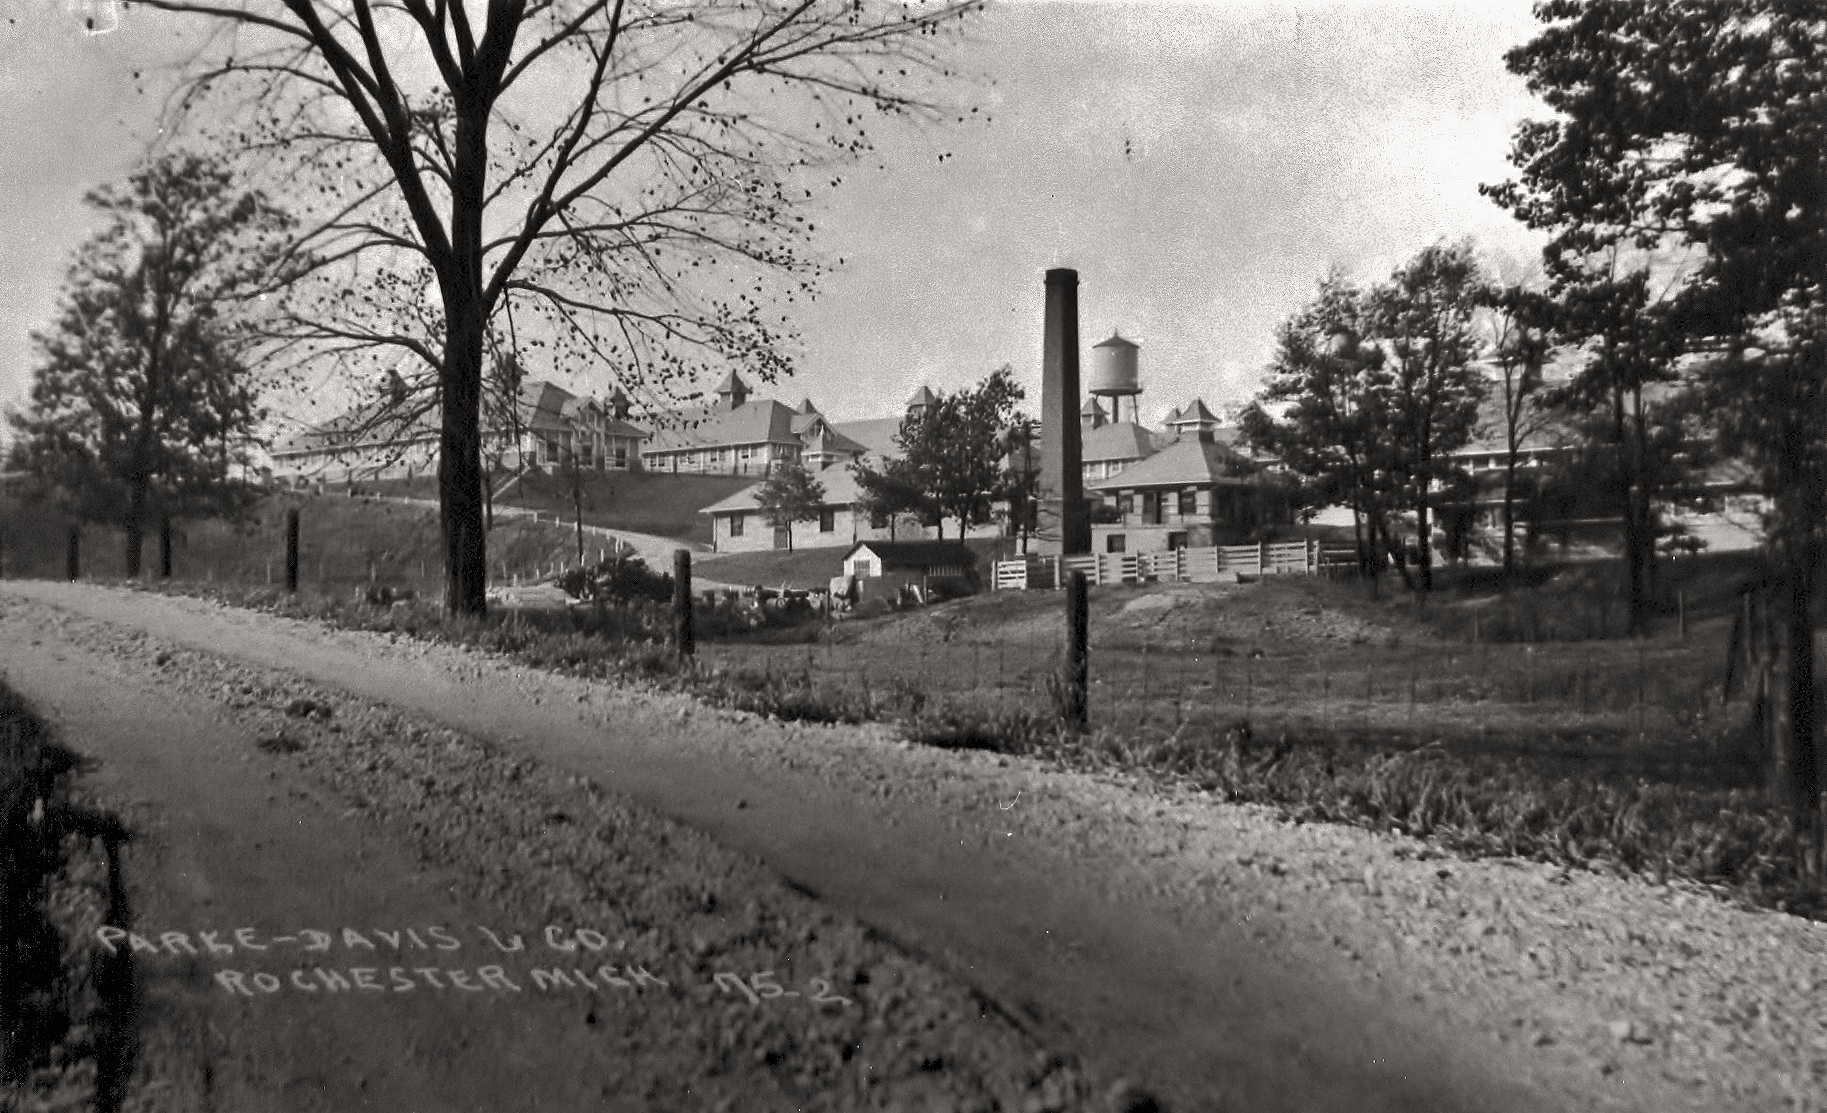 Parkedale - Photo Courtesy of the Library of Congress